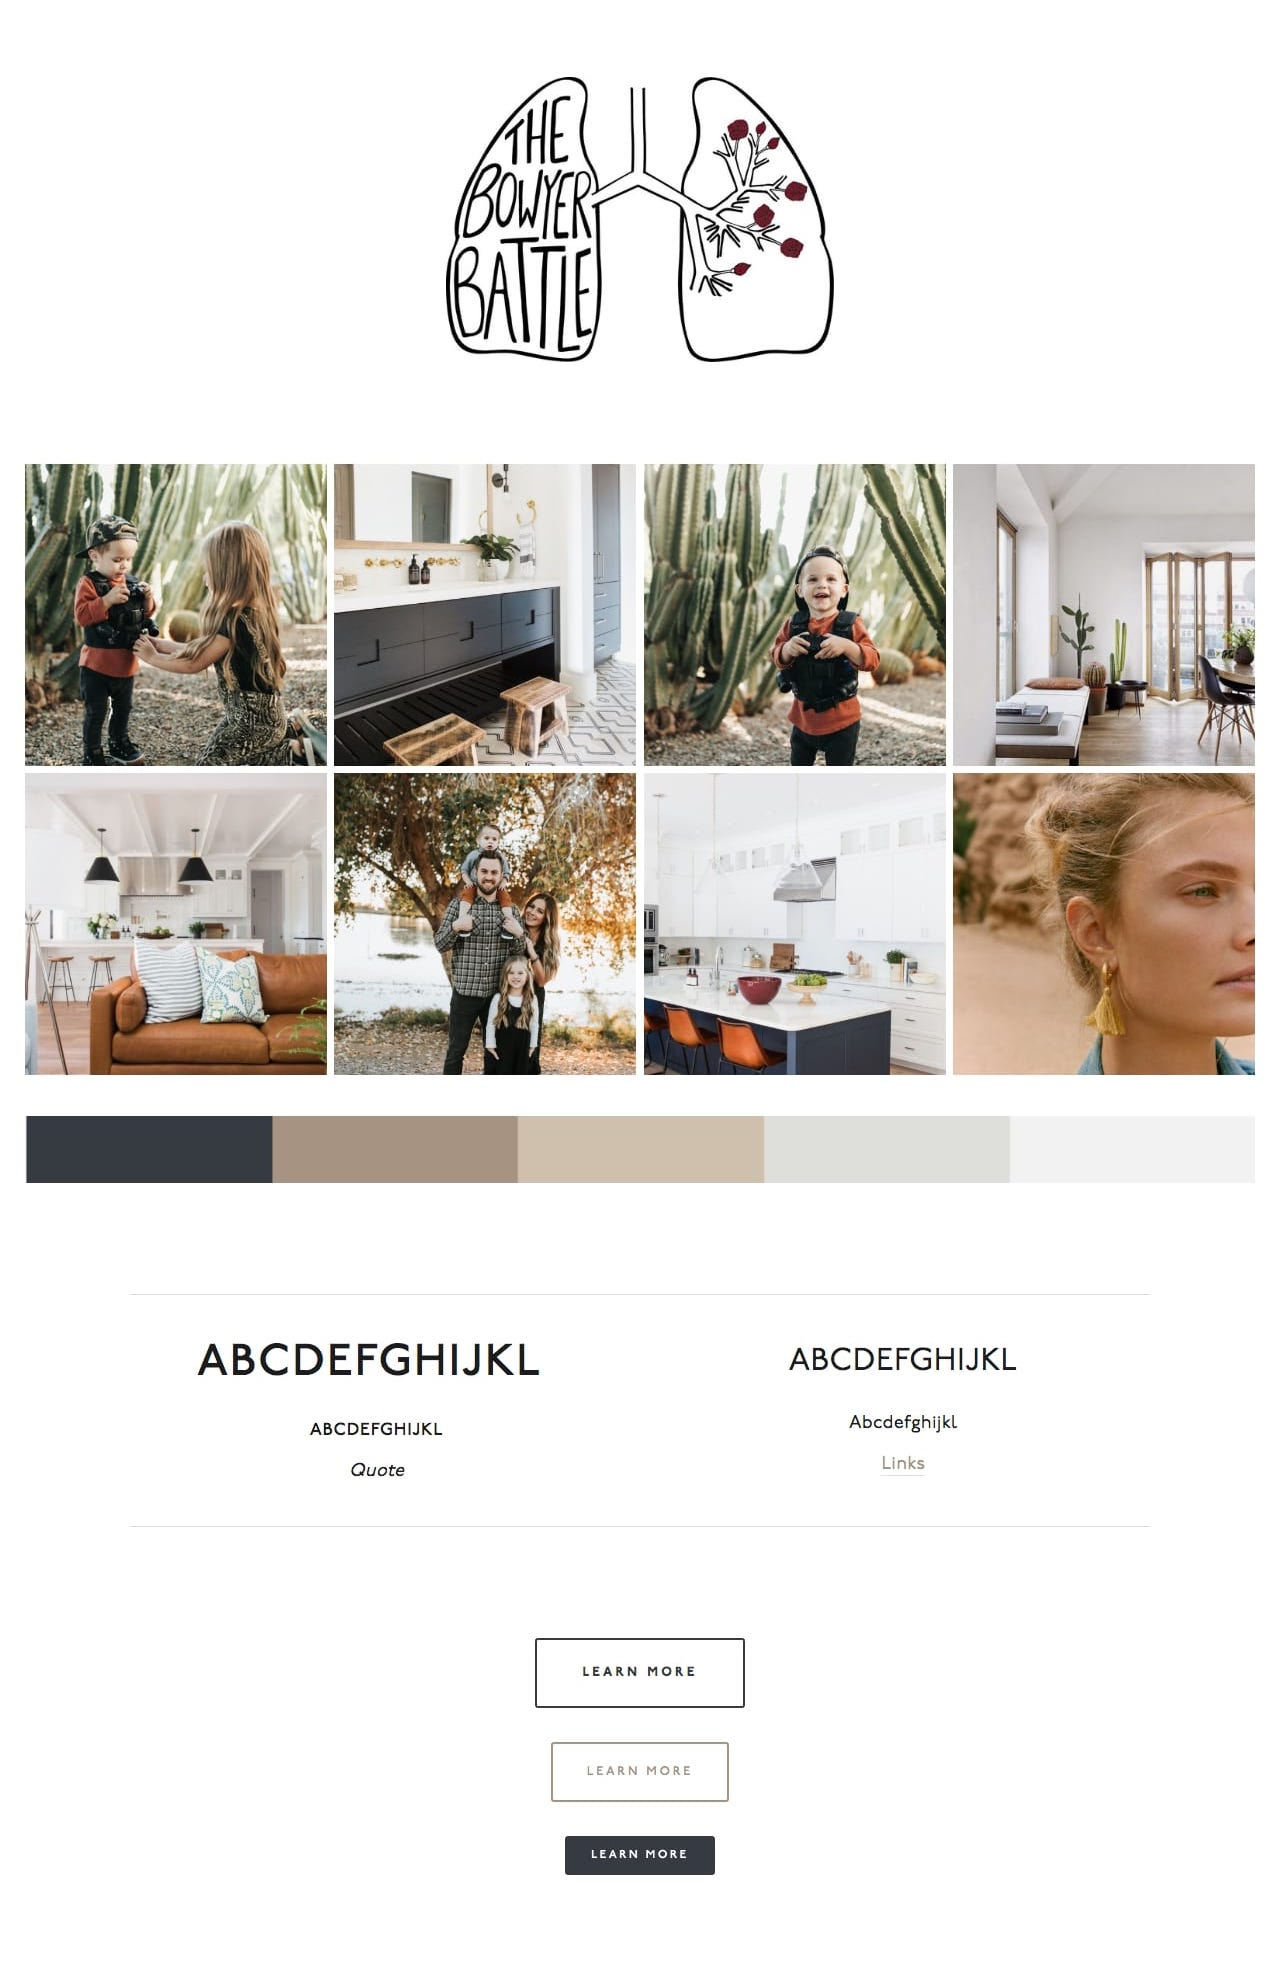 Image Credit: The Bowyer Battle, Madewell, Studio McGee